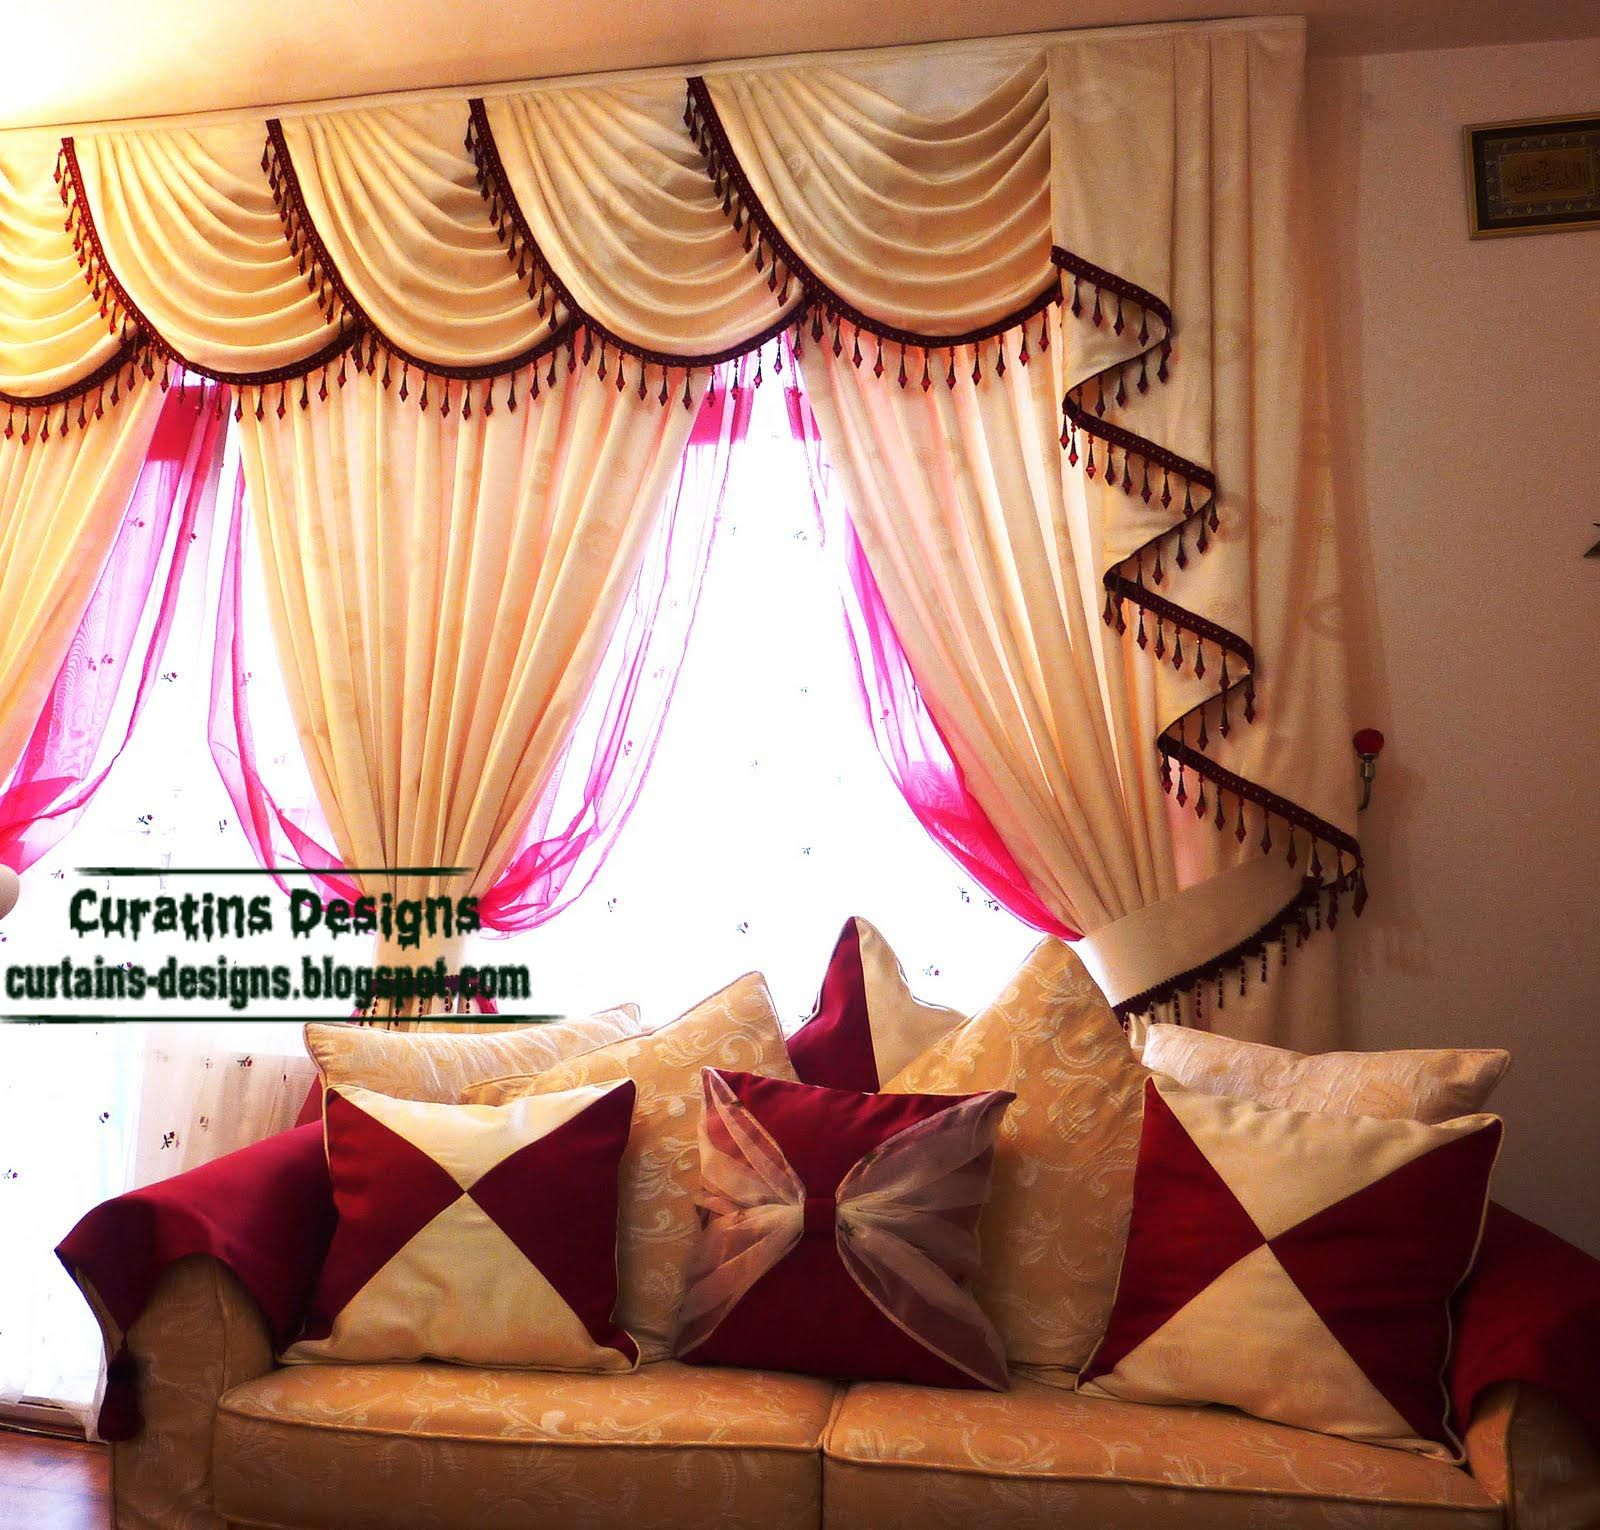 Indian Drapes Curtain Design For Living Room Beige Curtains Living Room Curtain Designs Drapes Curtains